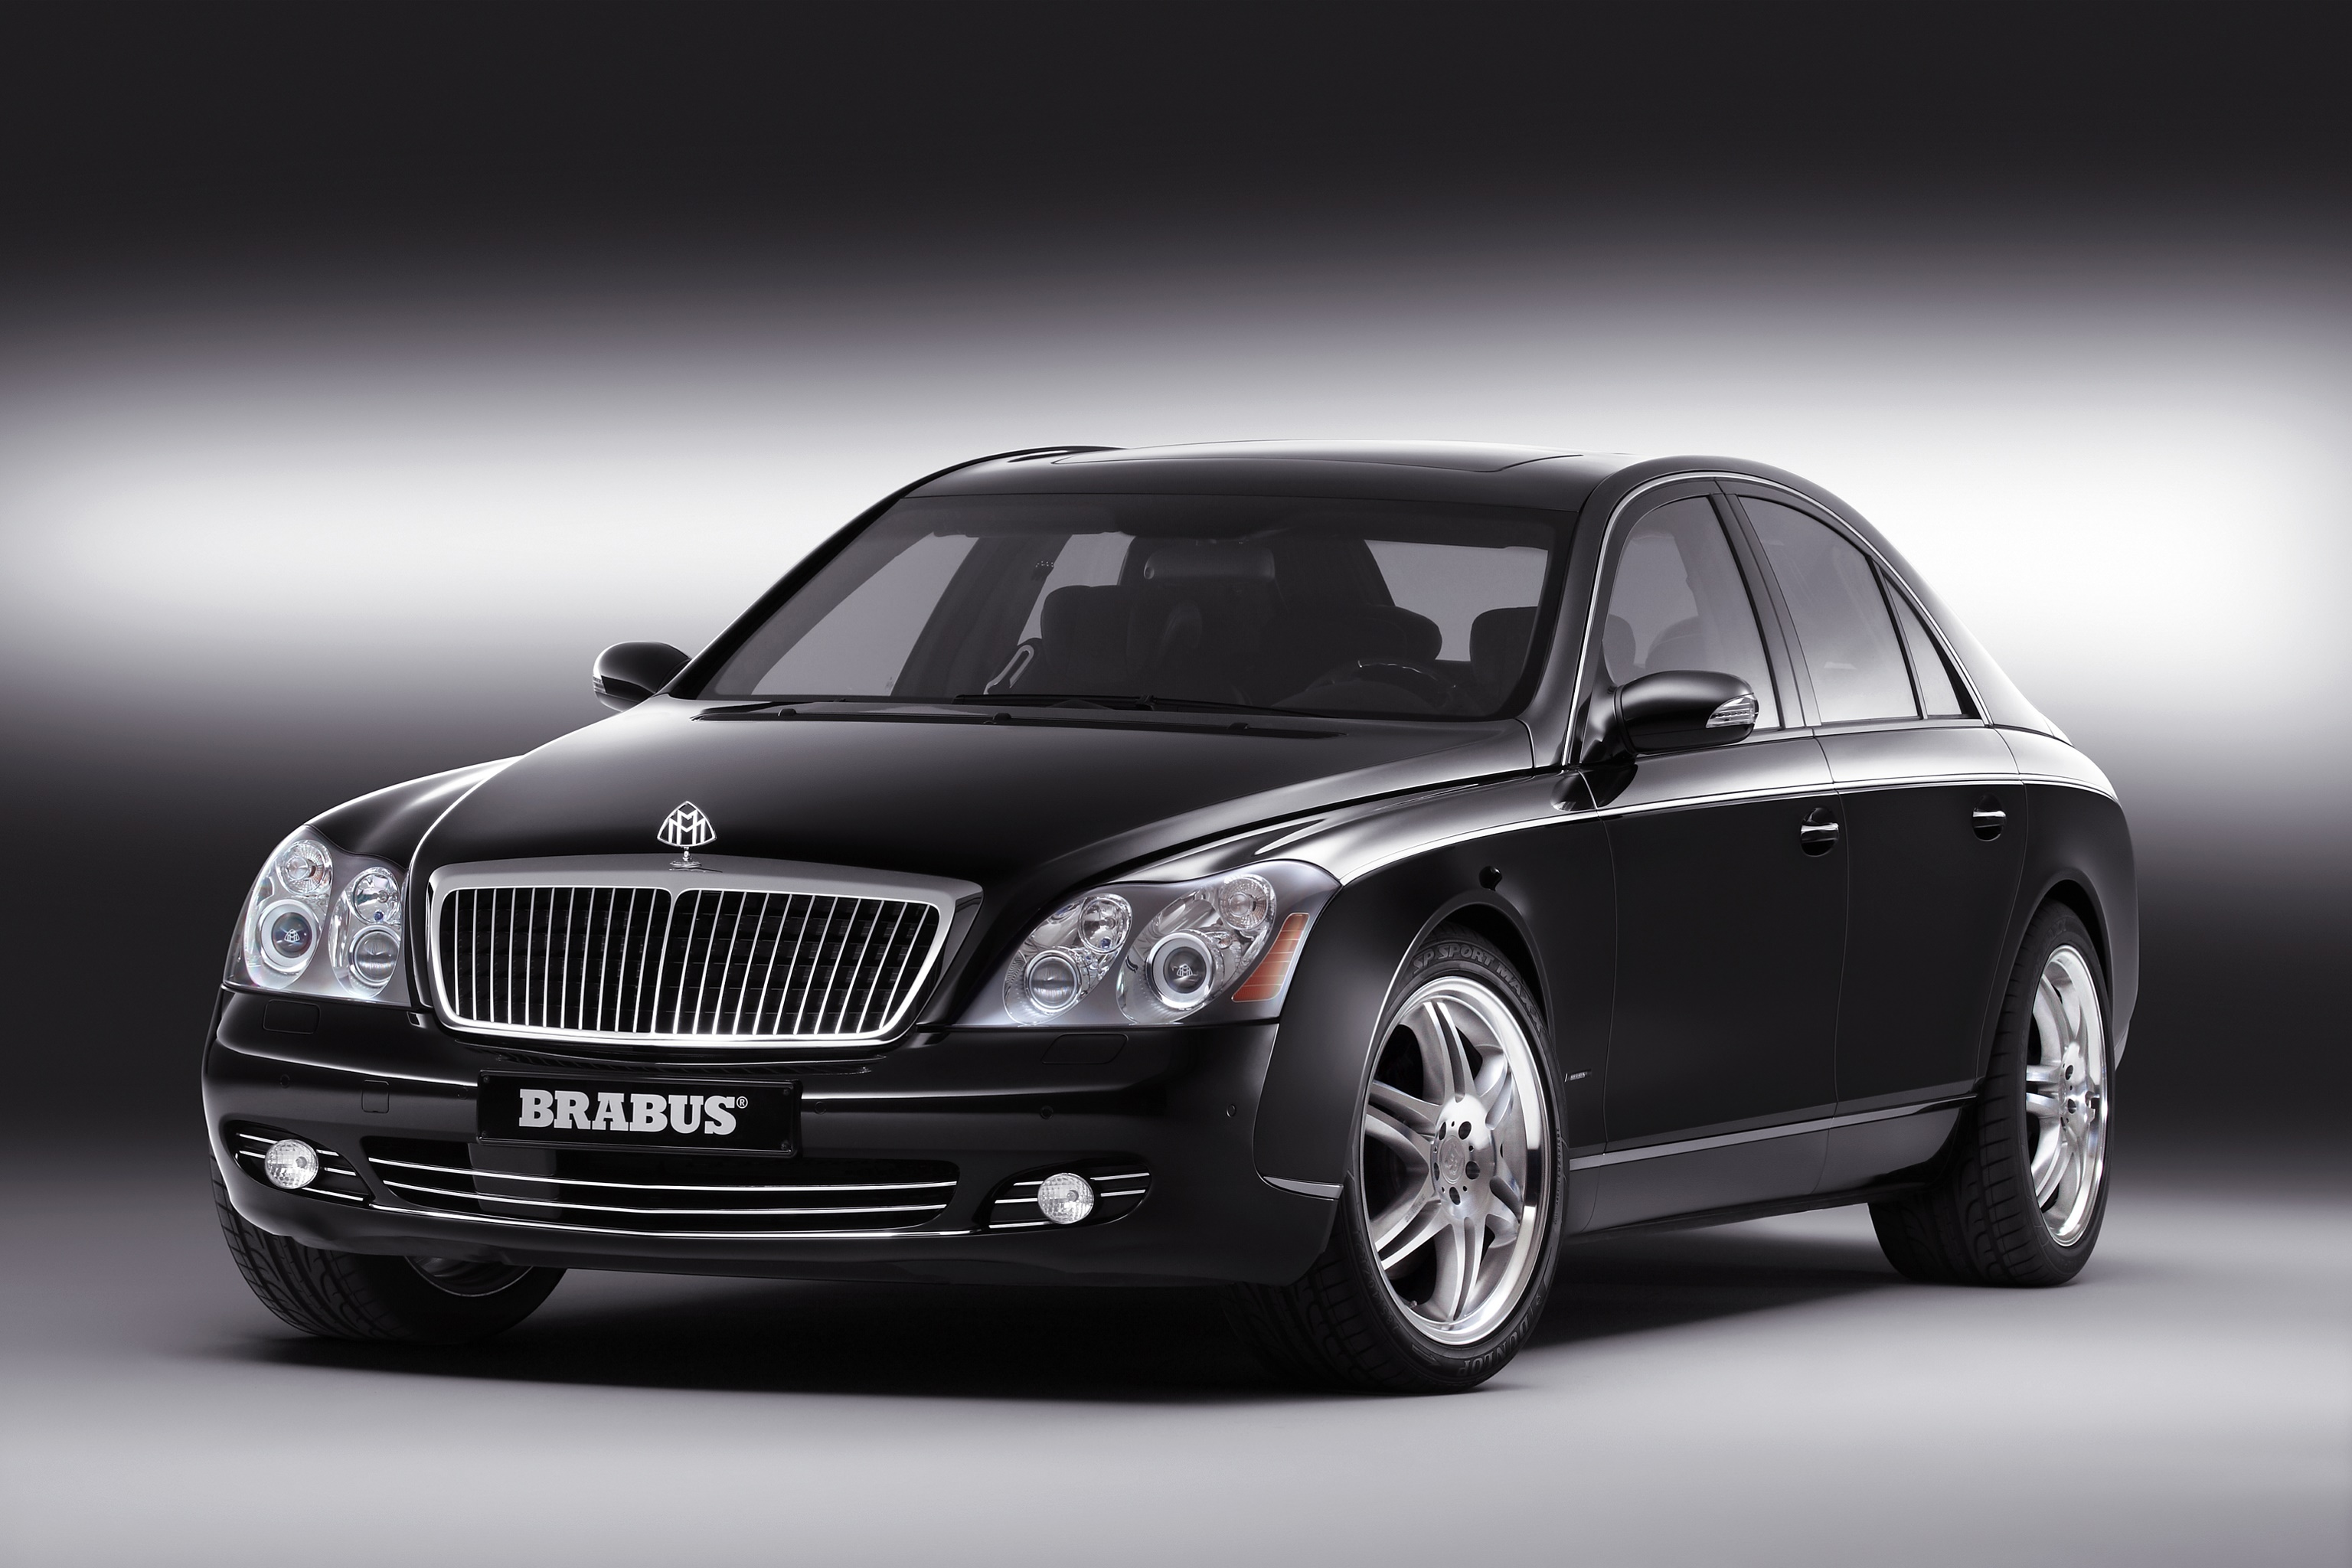 2006 Brabus Maybach Top Speed